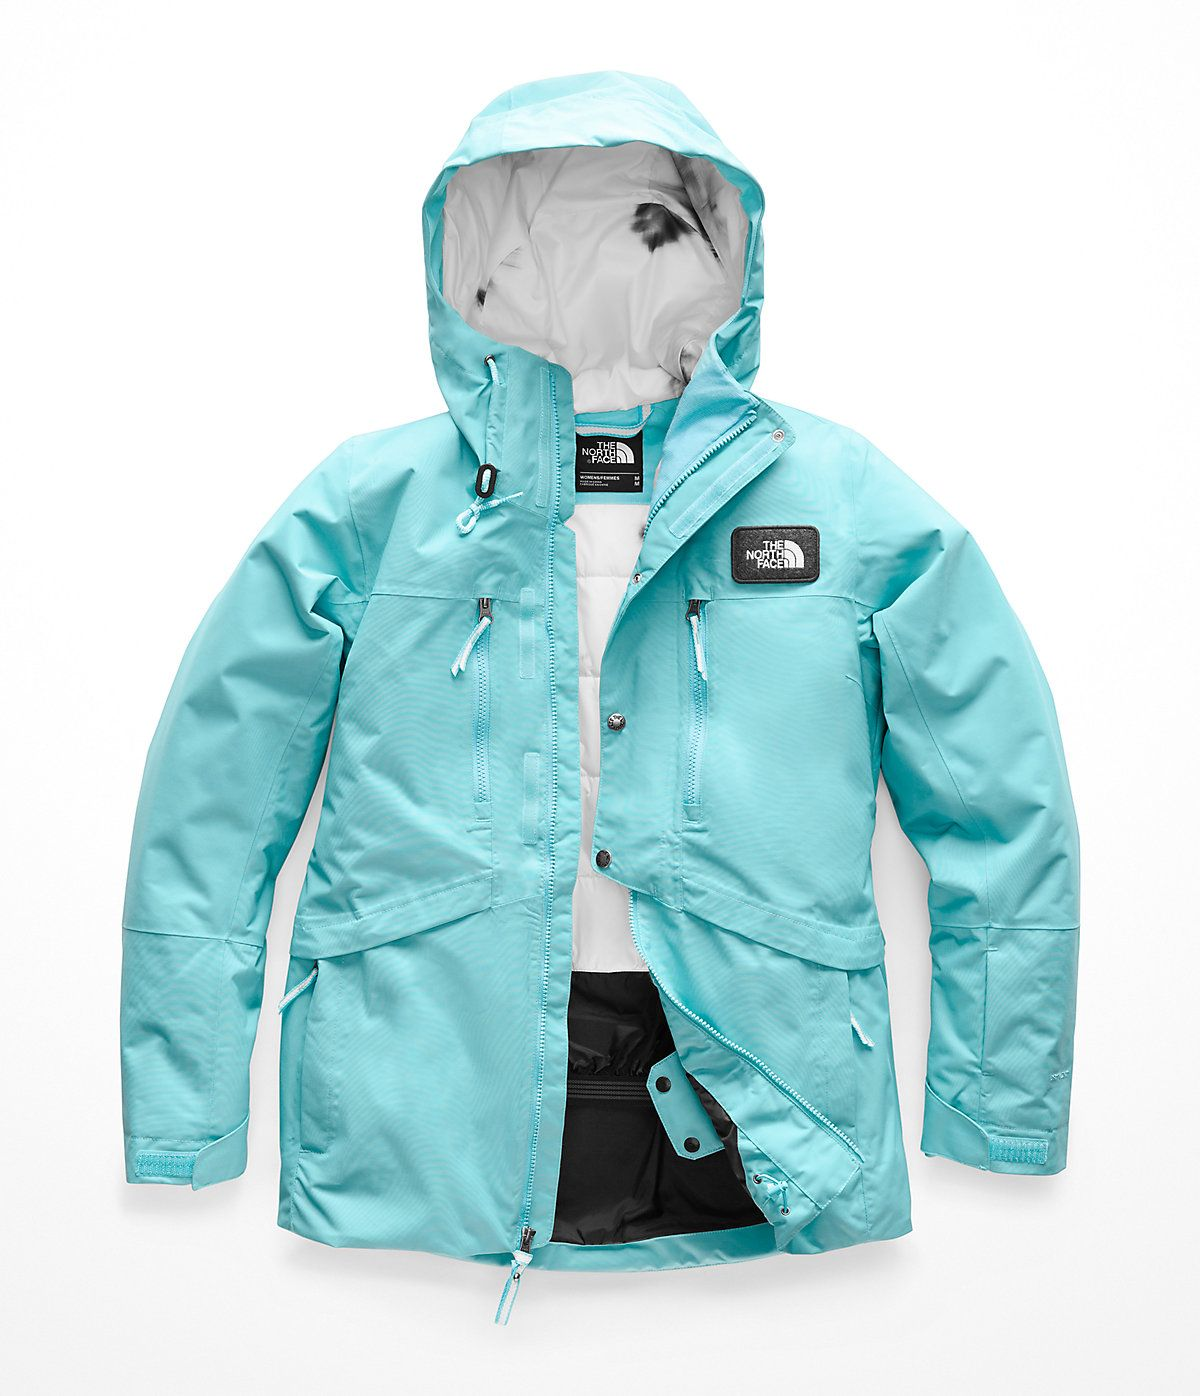 849a51677 Women's Superlu Jacket in 2019 | Products | Jackets, North face ...